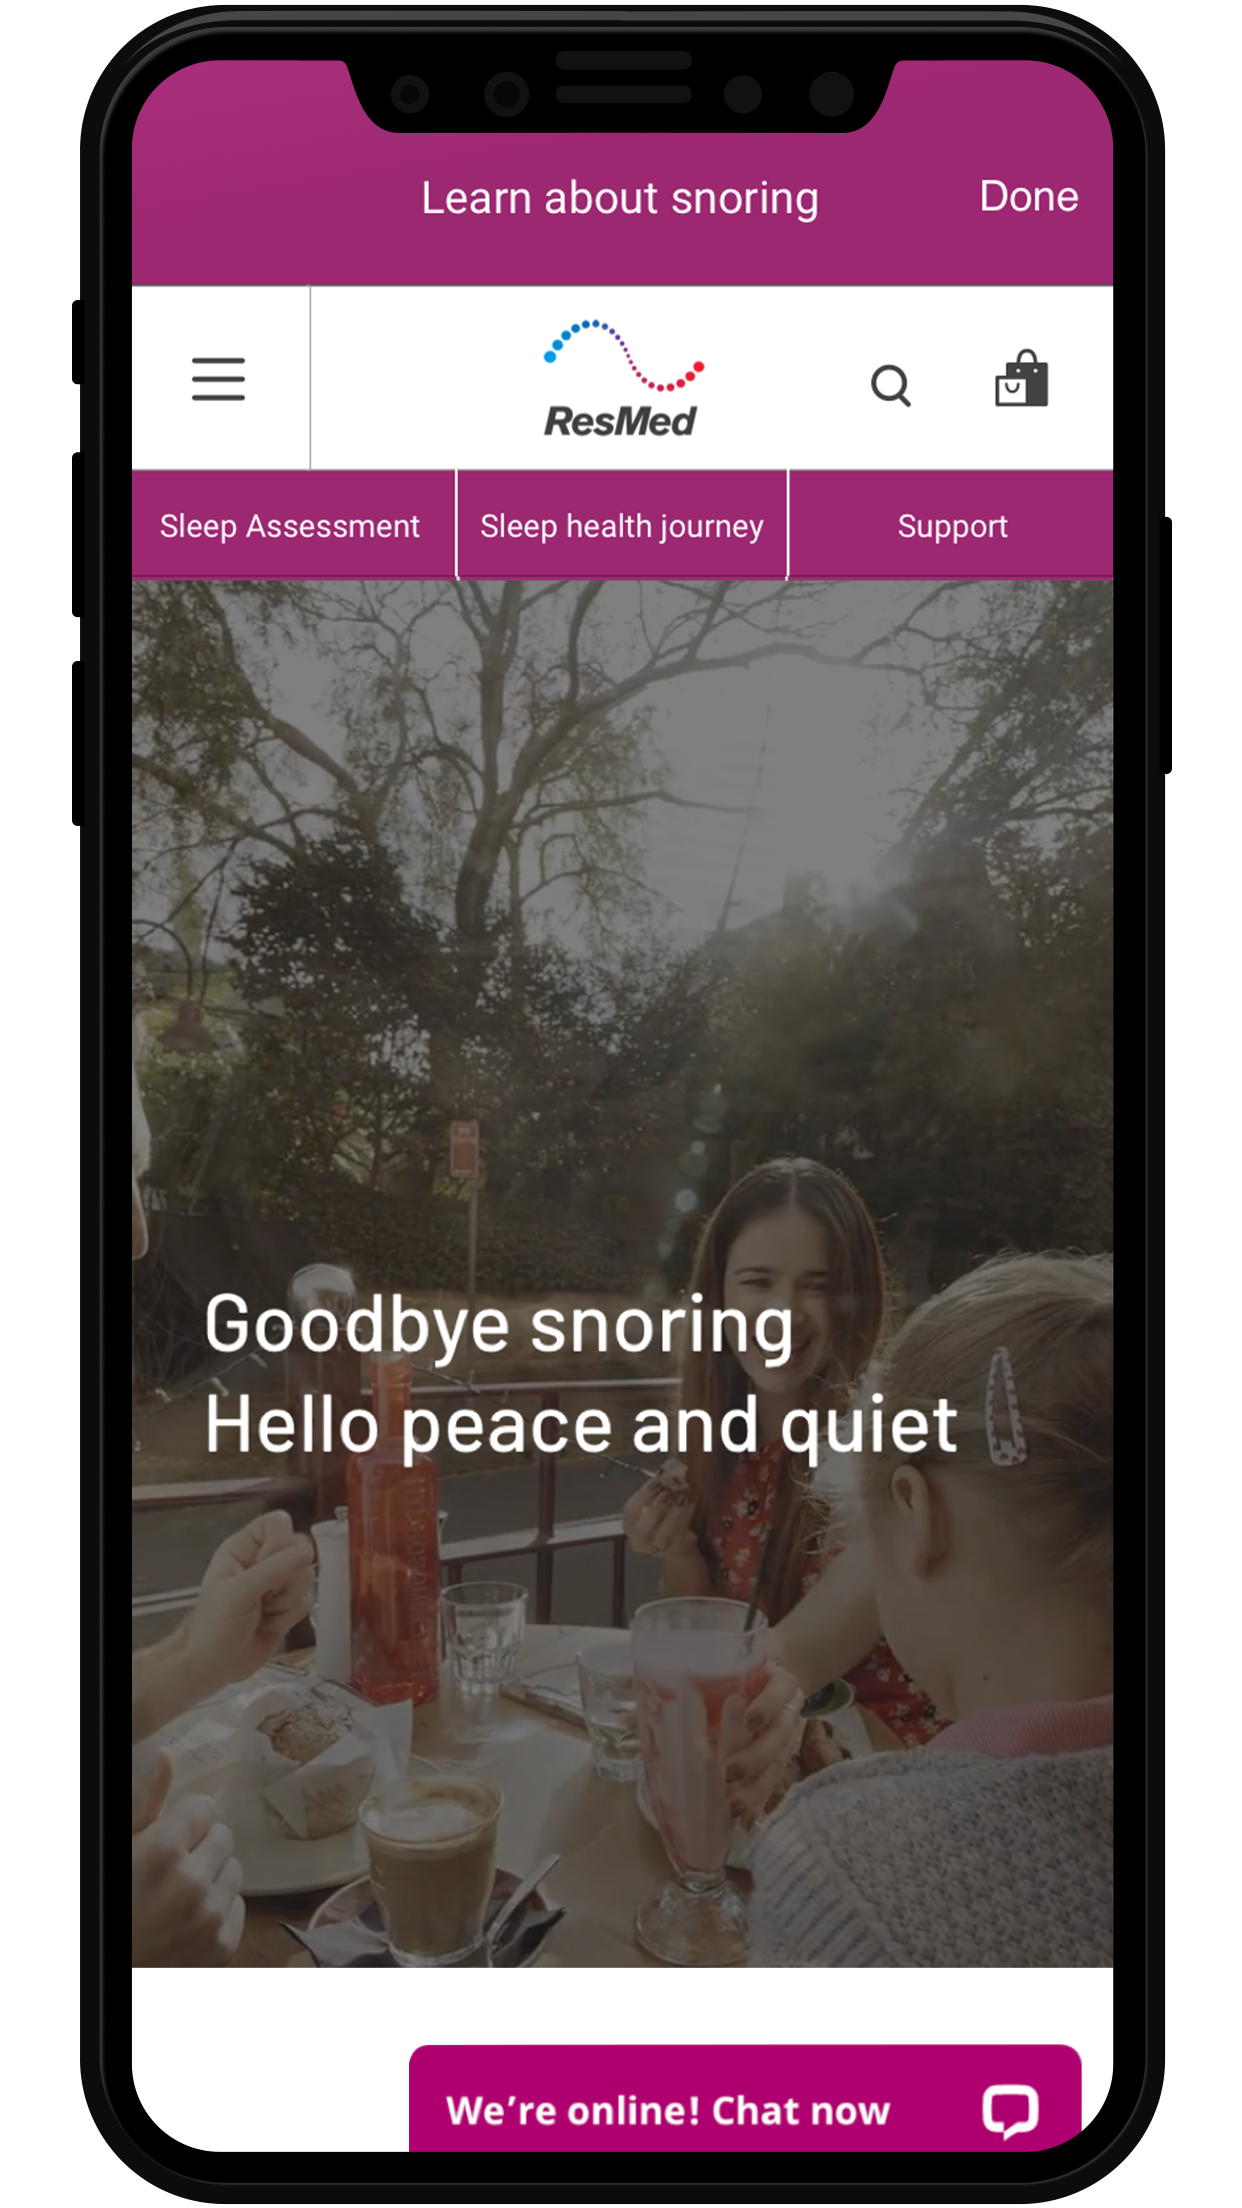 myNight 1.2_learn about snoring